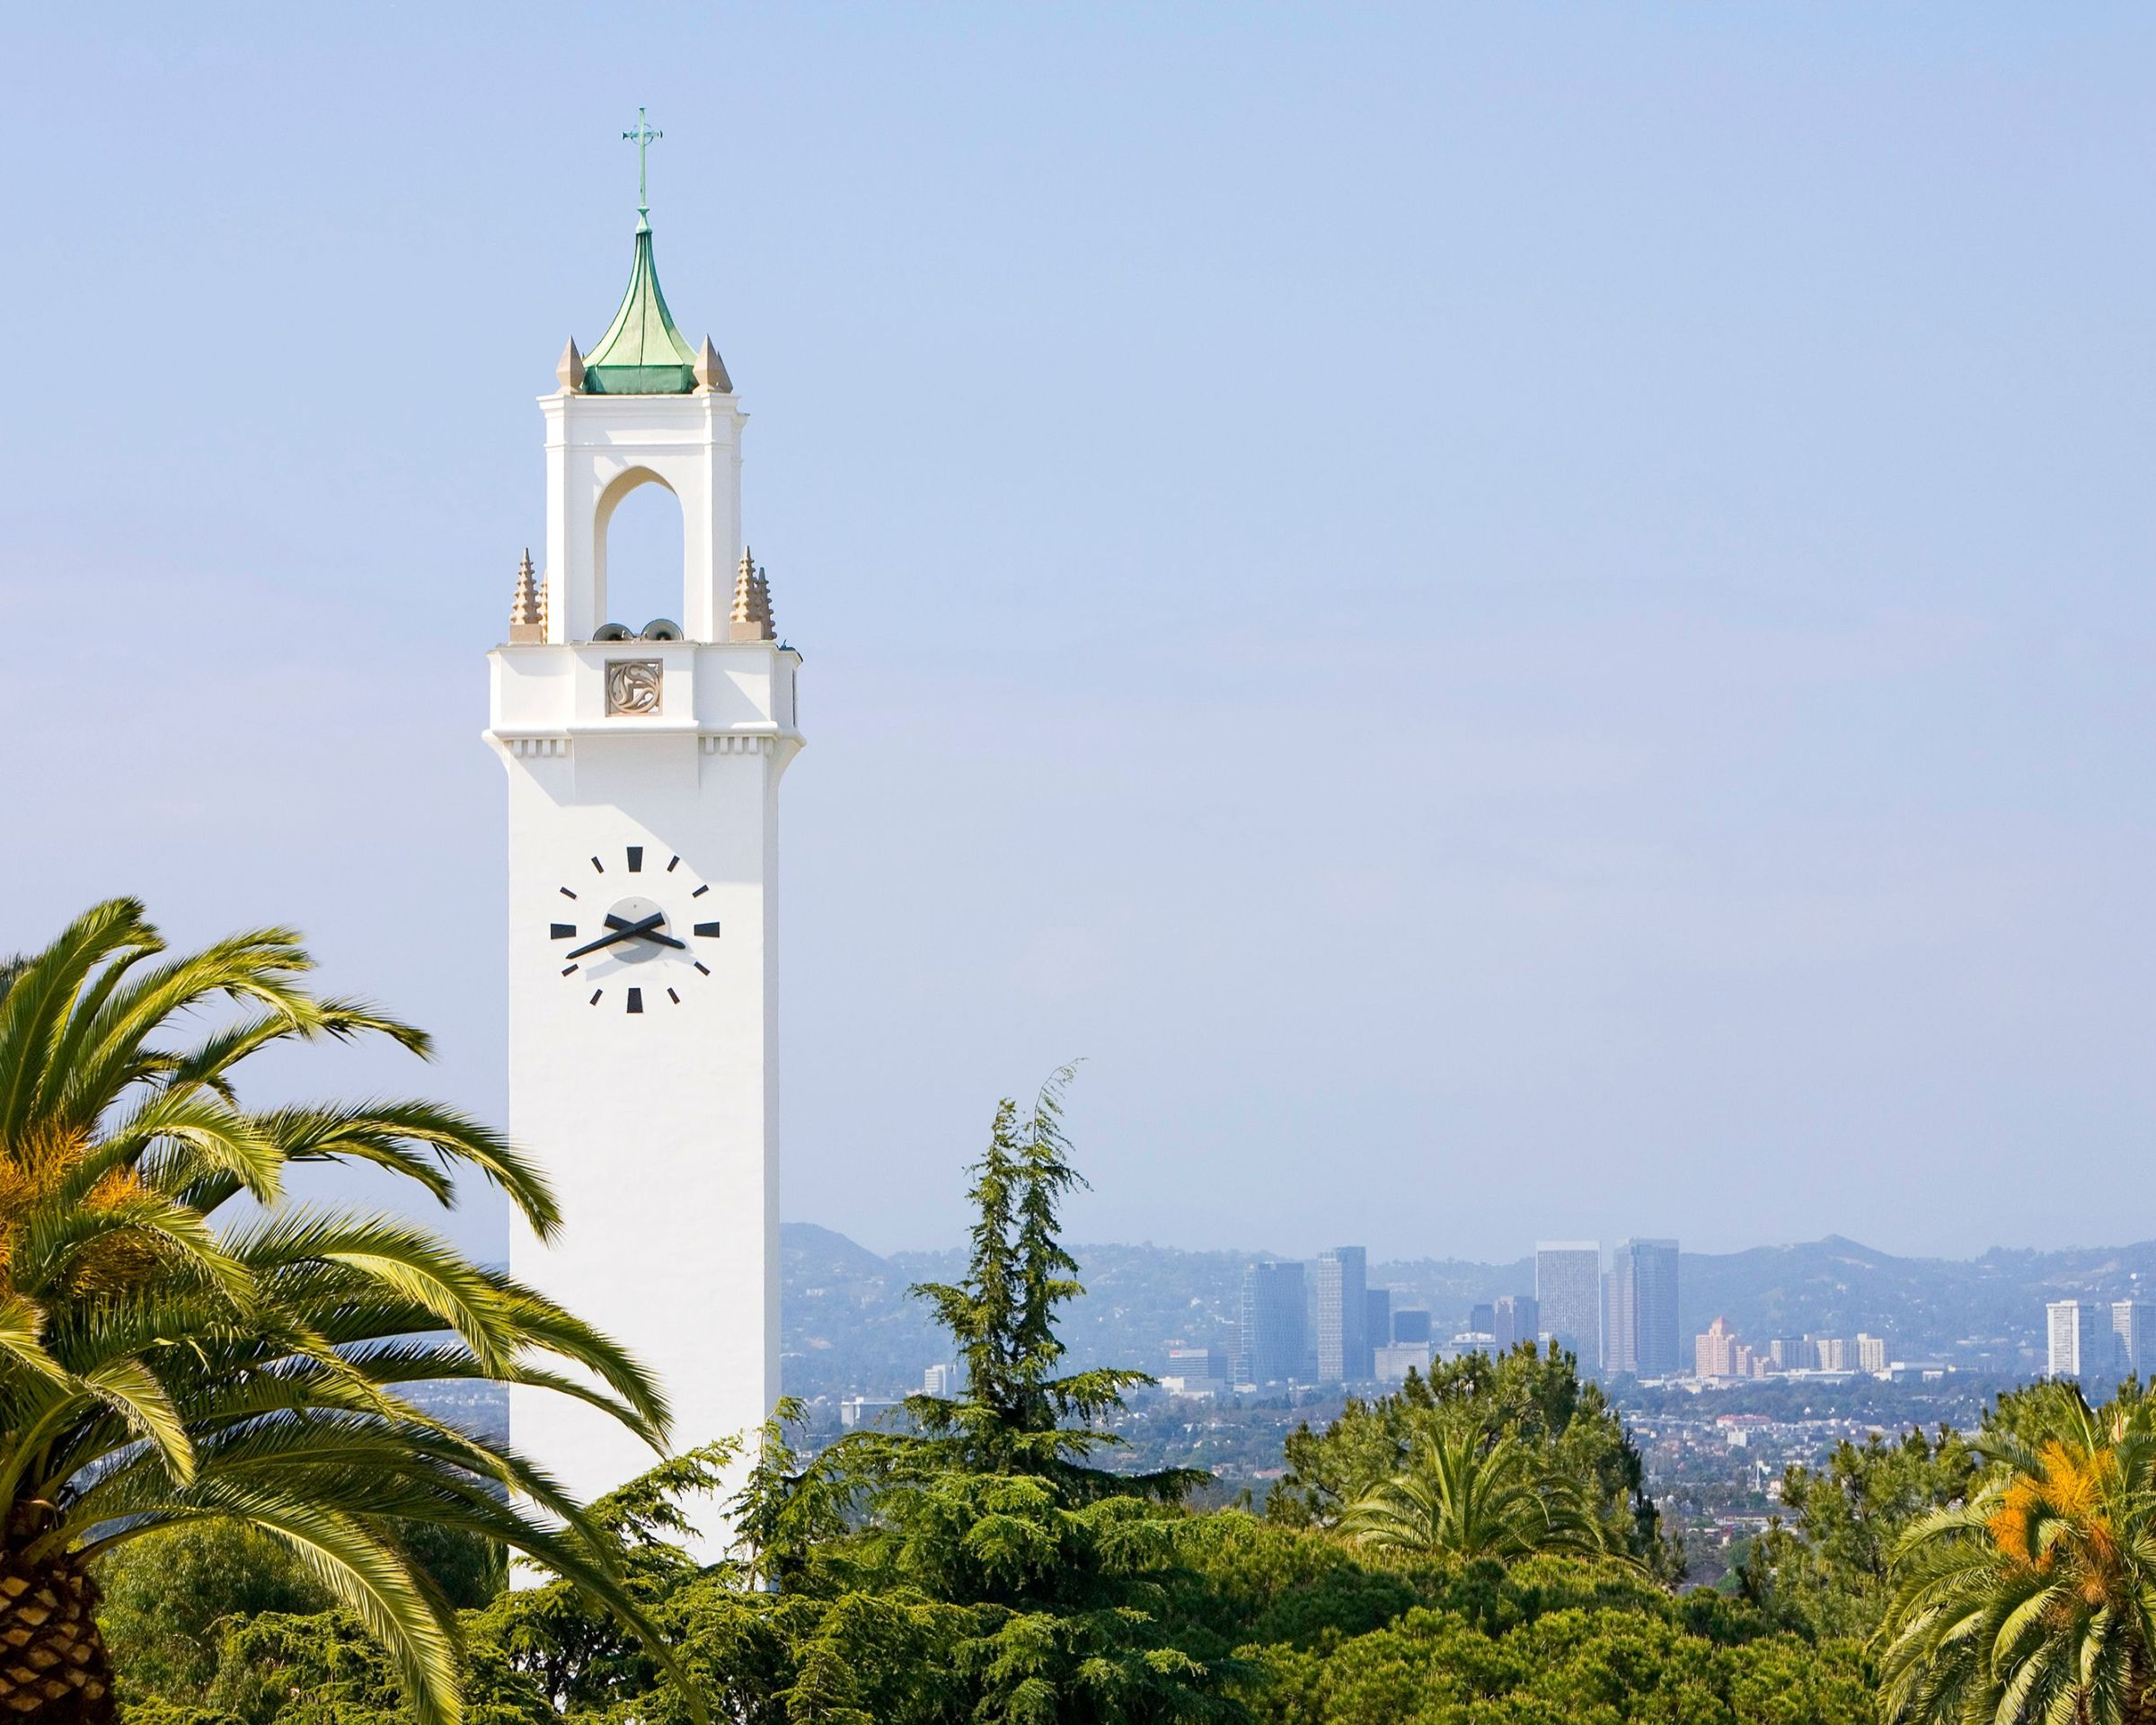 LMU Clocktower